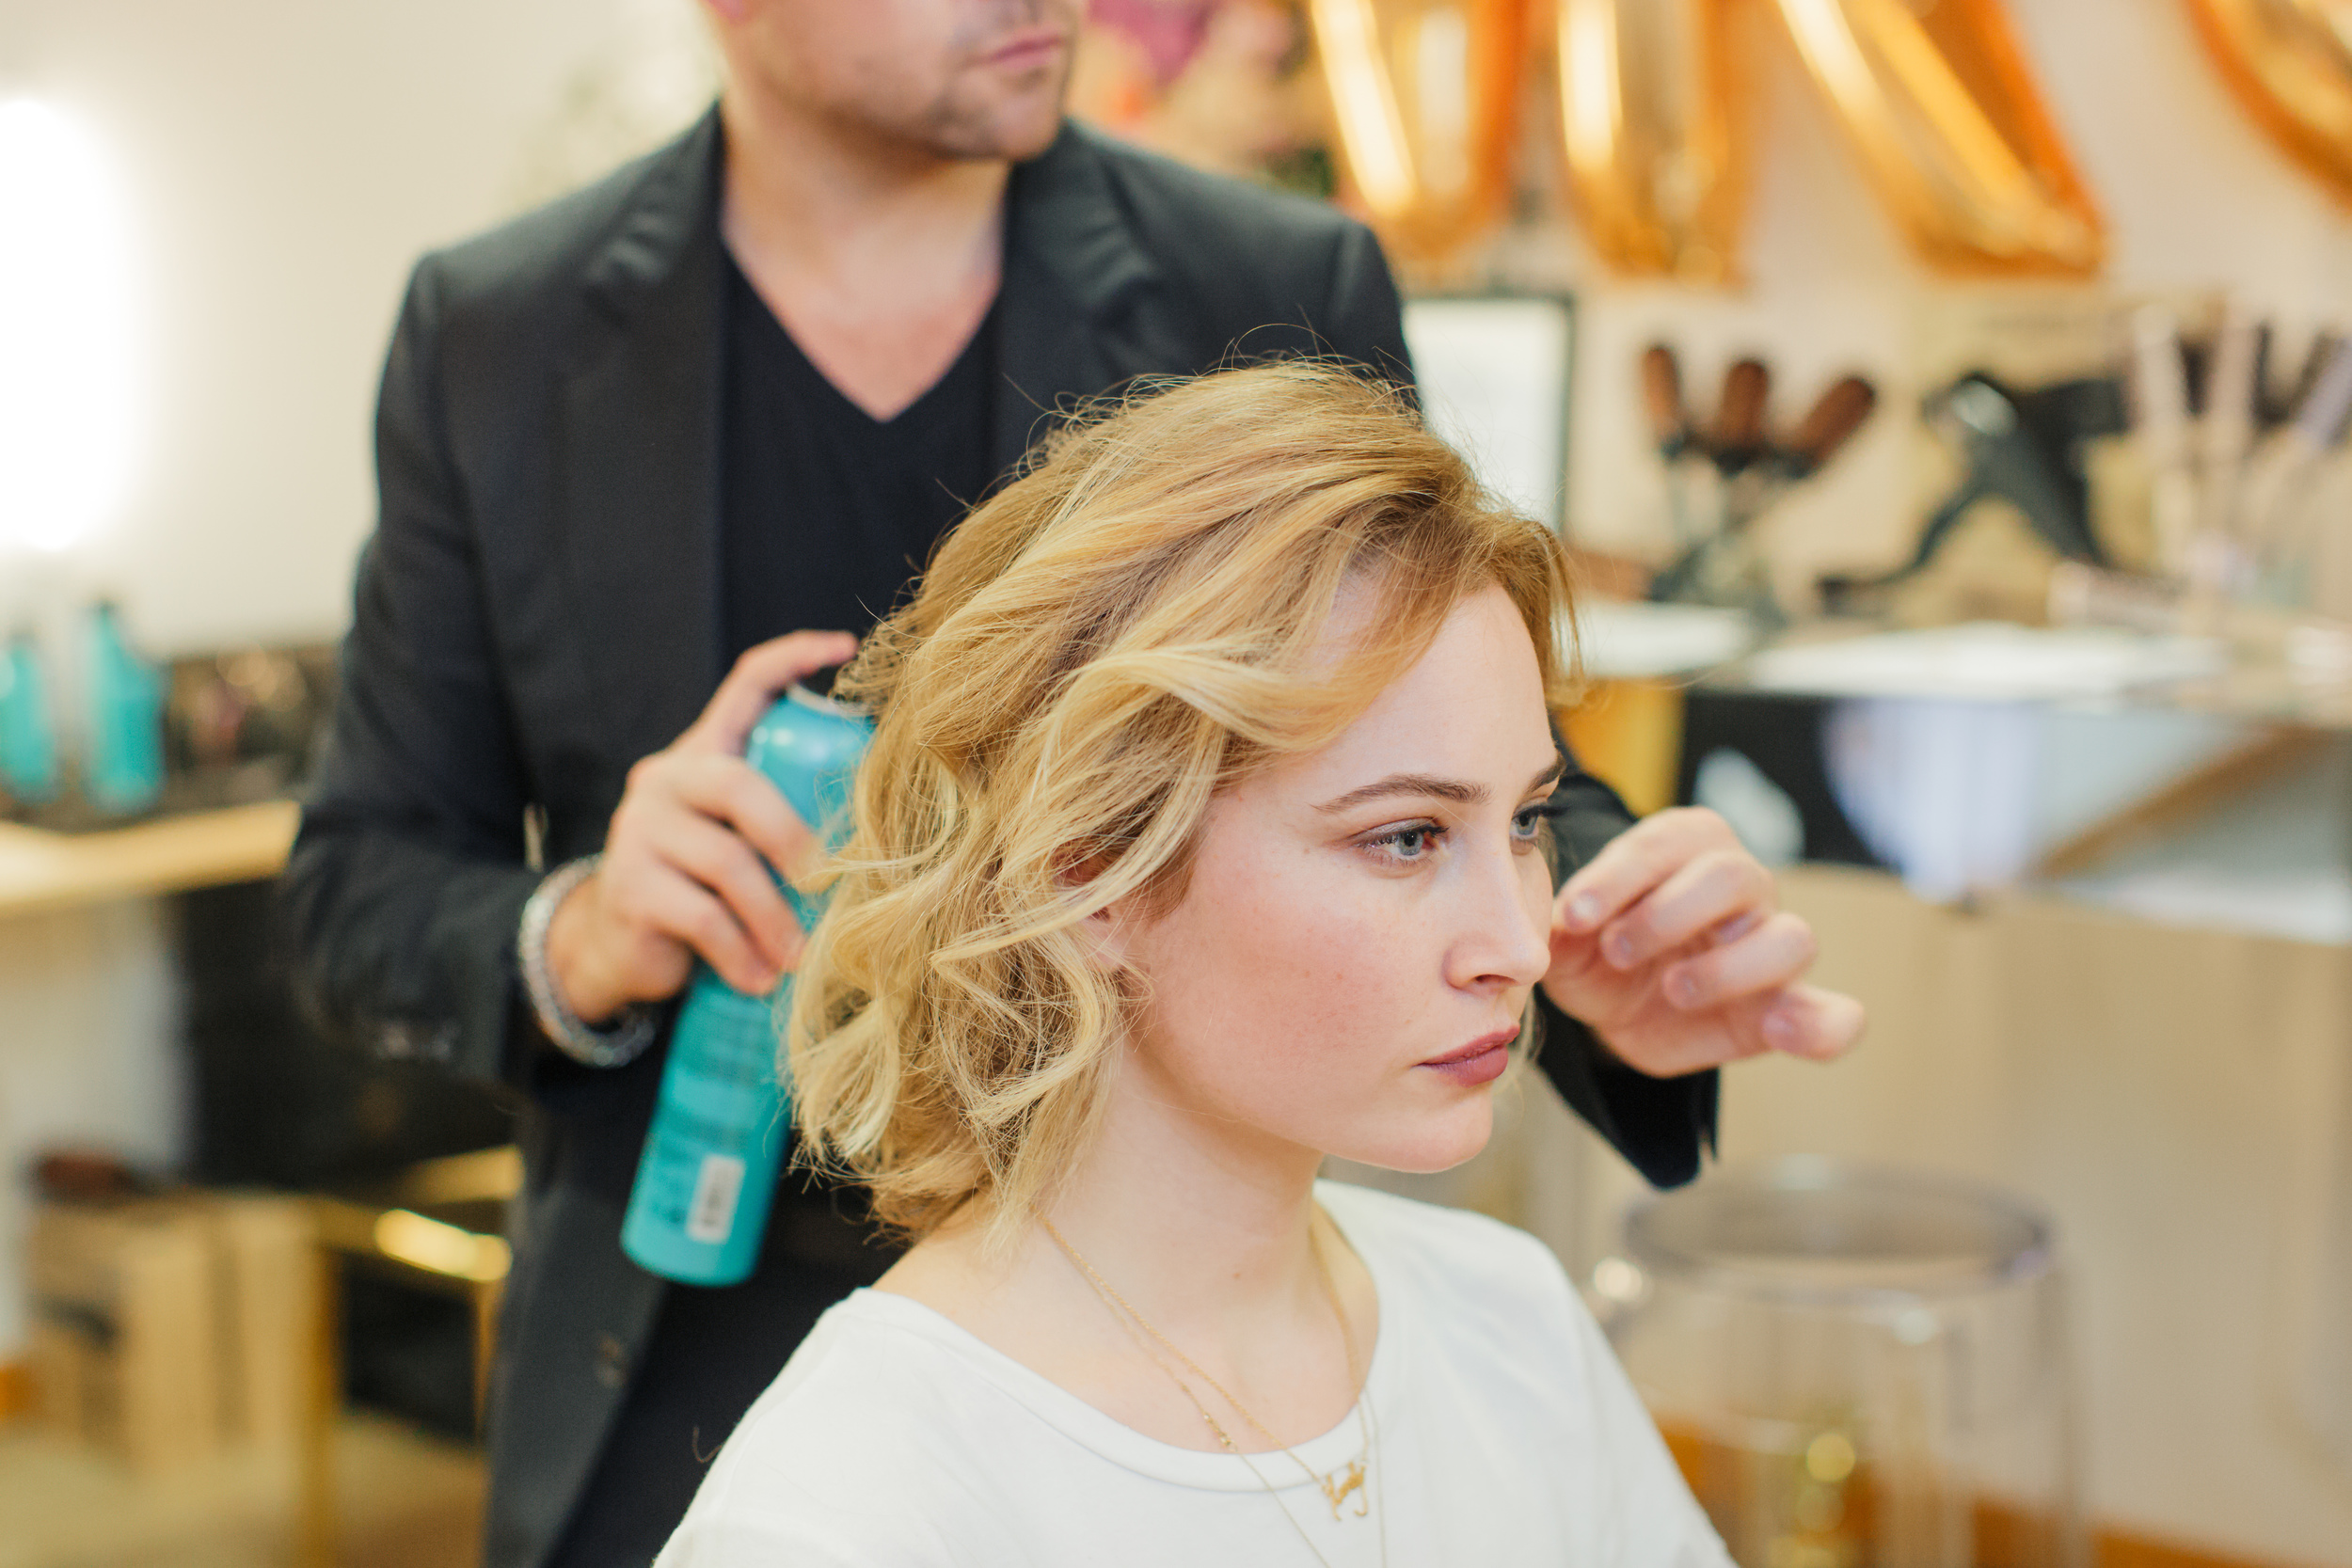 To finish off the look, apply  Matrix Total Results High Amplify Hairspray Flexible Hold Hairspray for extra shine and hold.Lightly mist and finger rake for a full-bodied finished style.